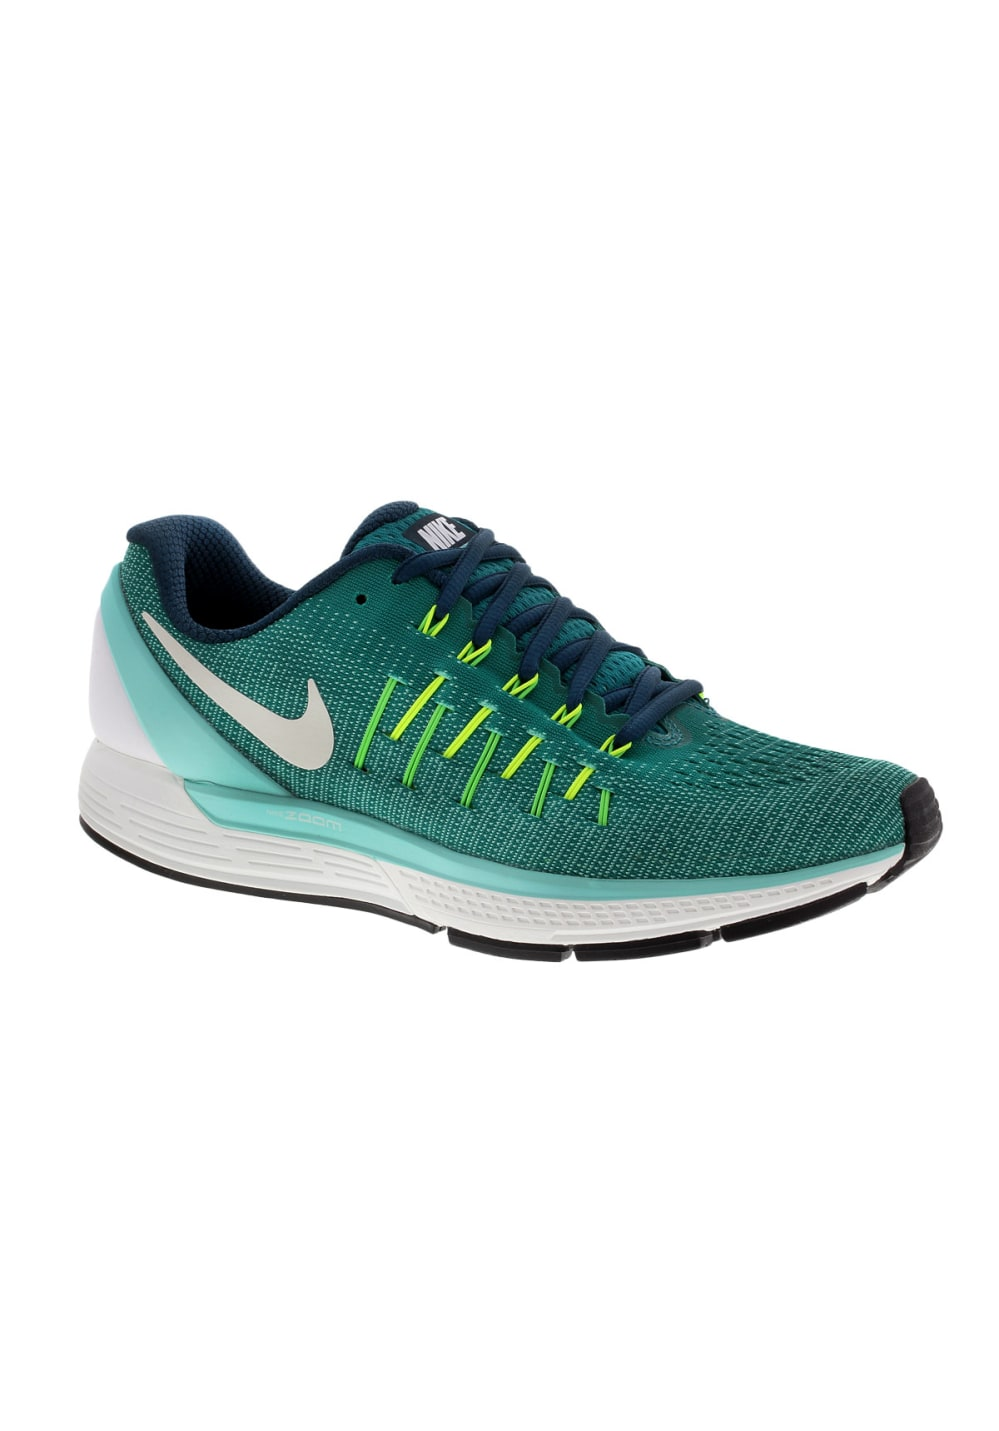 ecb629dbcfa Next. -50%. This product is currently out of stock. Nike. Air Zoom Odyssey 2  - Running shoes for Women